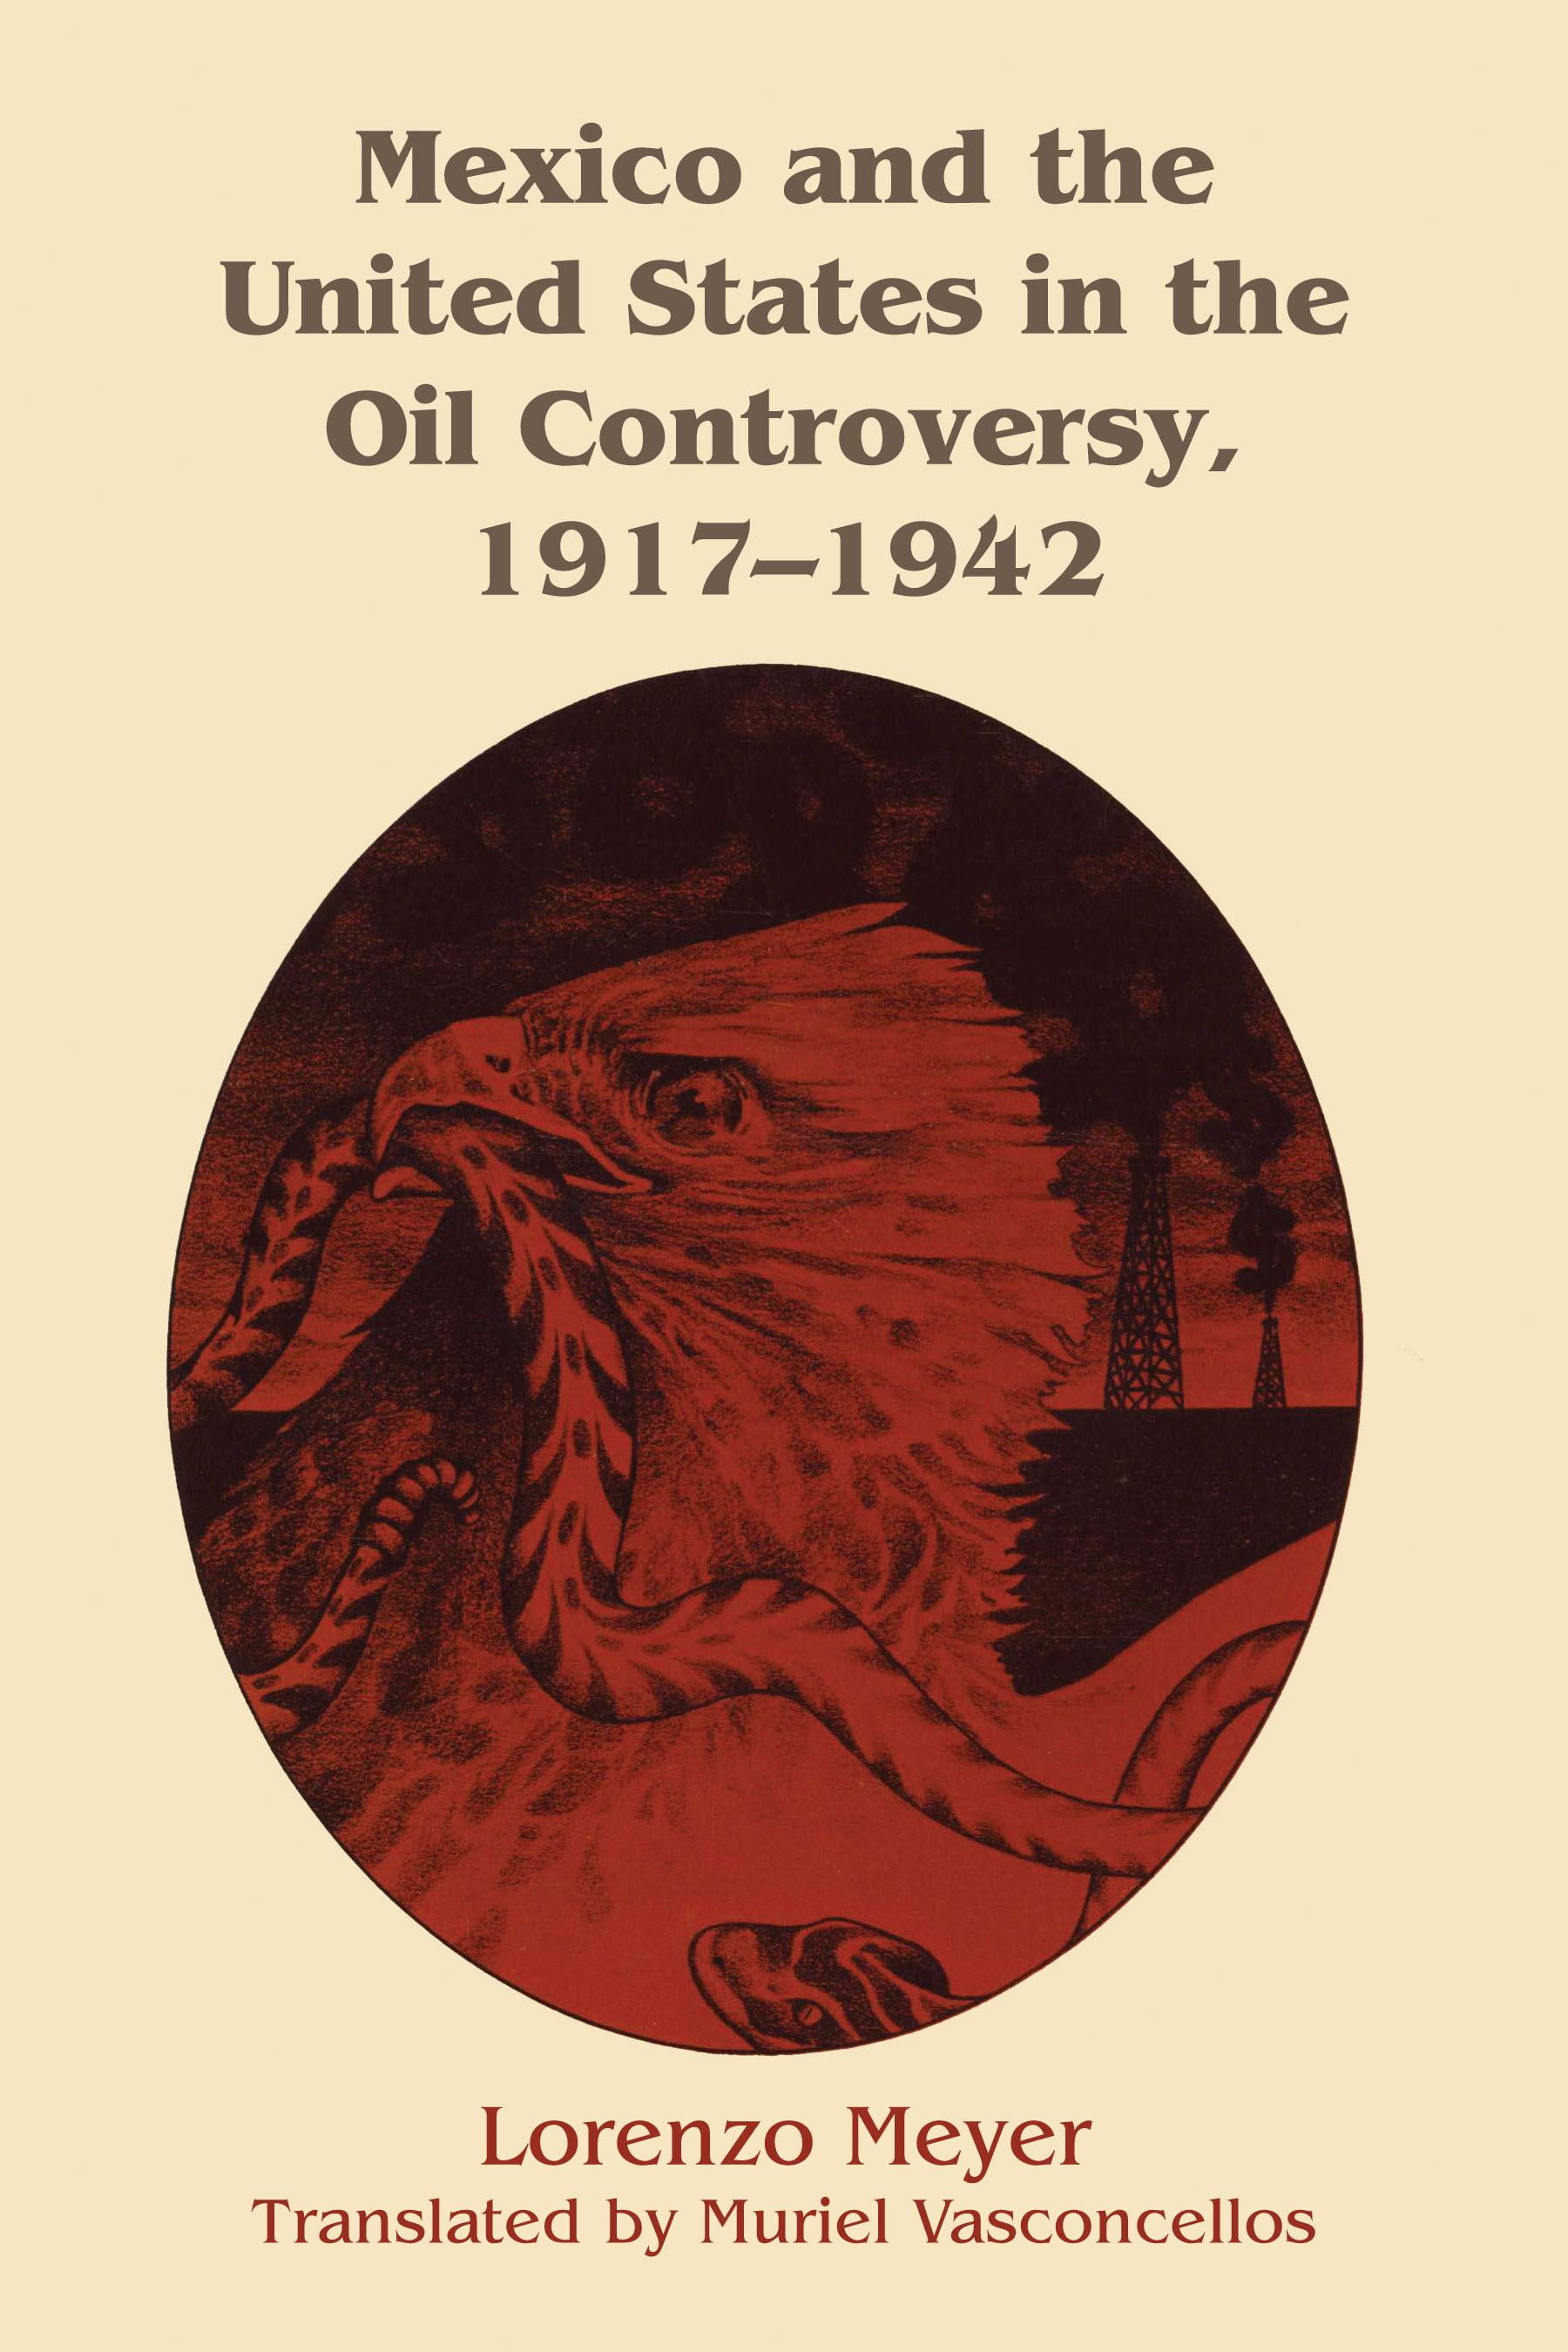 Cover of Mexico and the United States in the Oil Controversy, 1917-1942